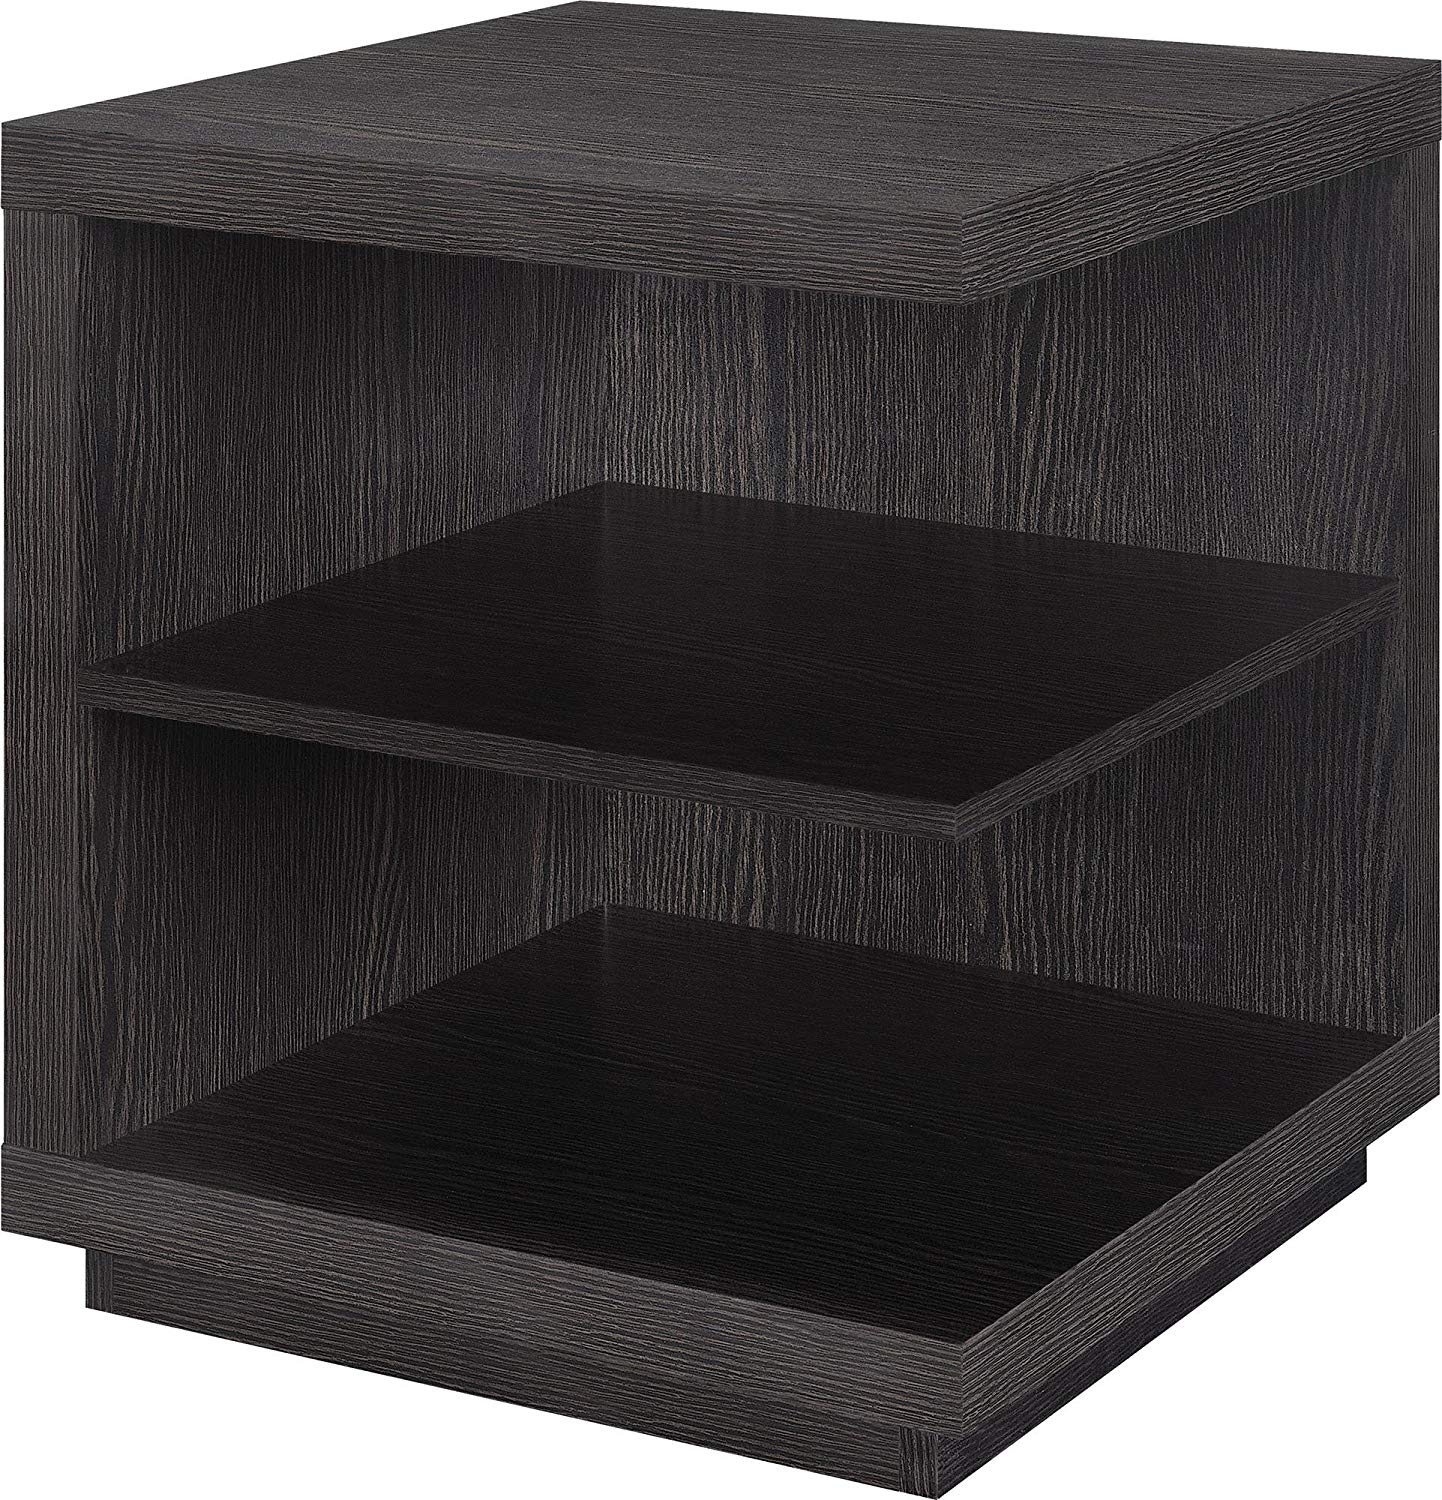 dog cot probably perfect favorite black storage end table the ameriwood home fremont accent espresso kitchen dining tall tables ikea white round tree stump nightstand snack tray